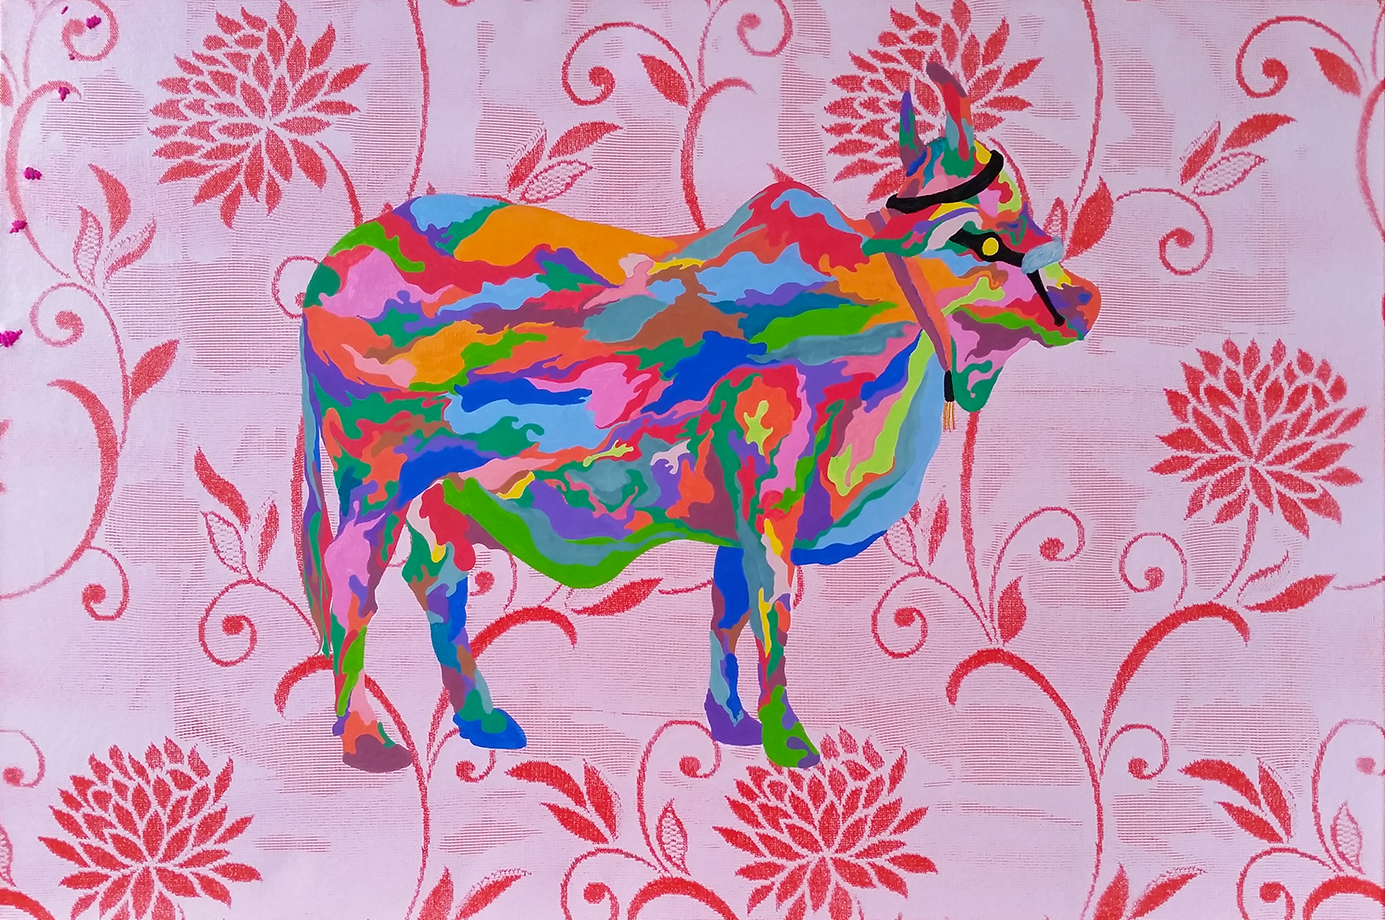 Von Grey's tribute to Cows